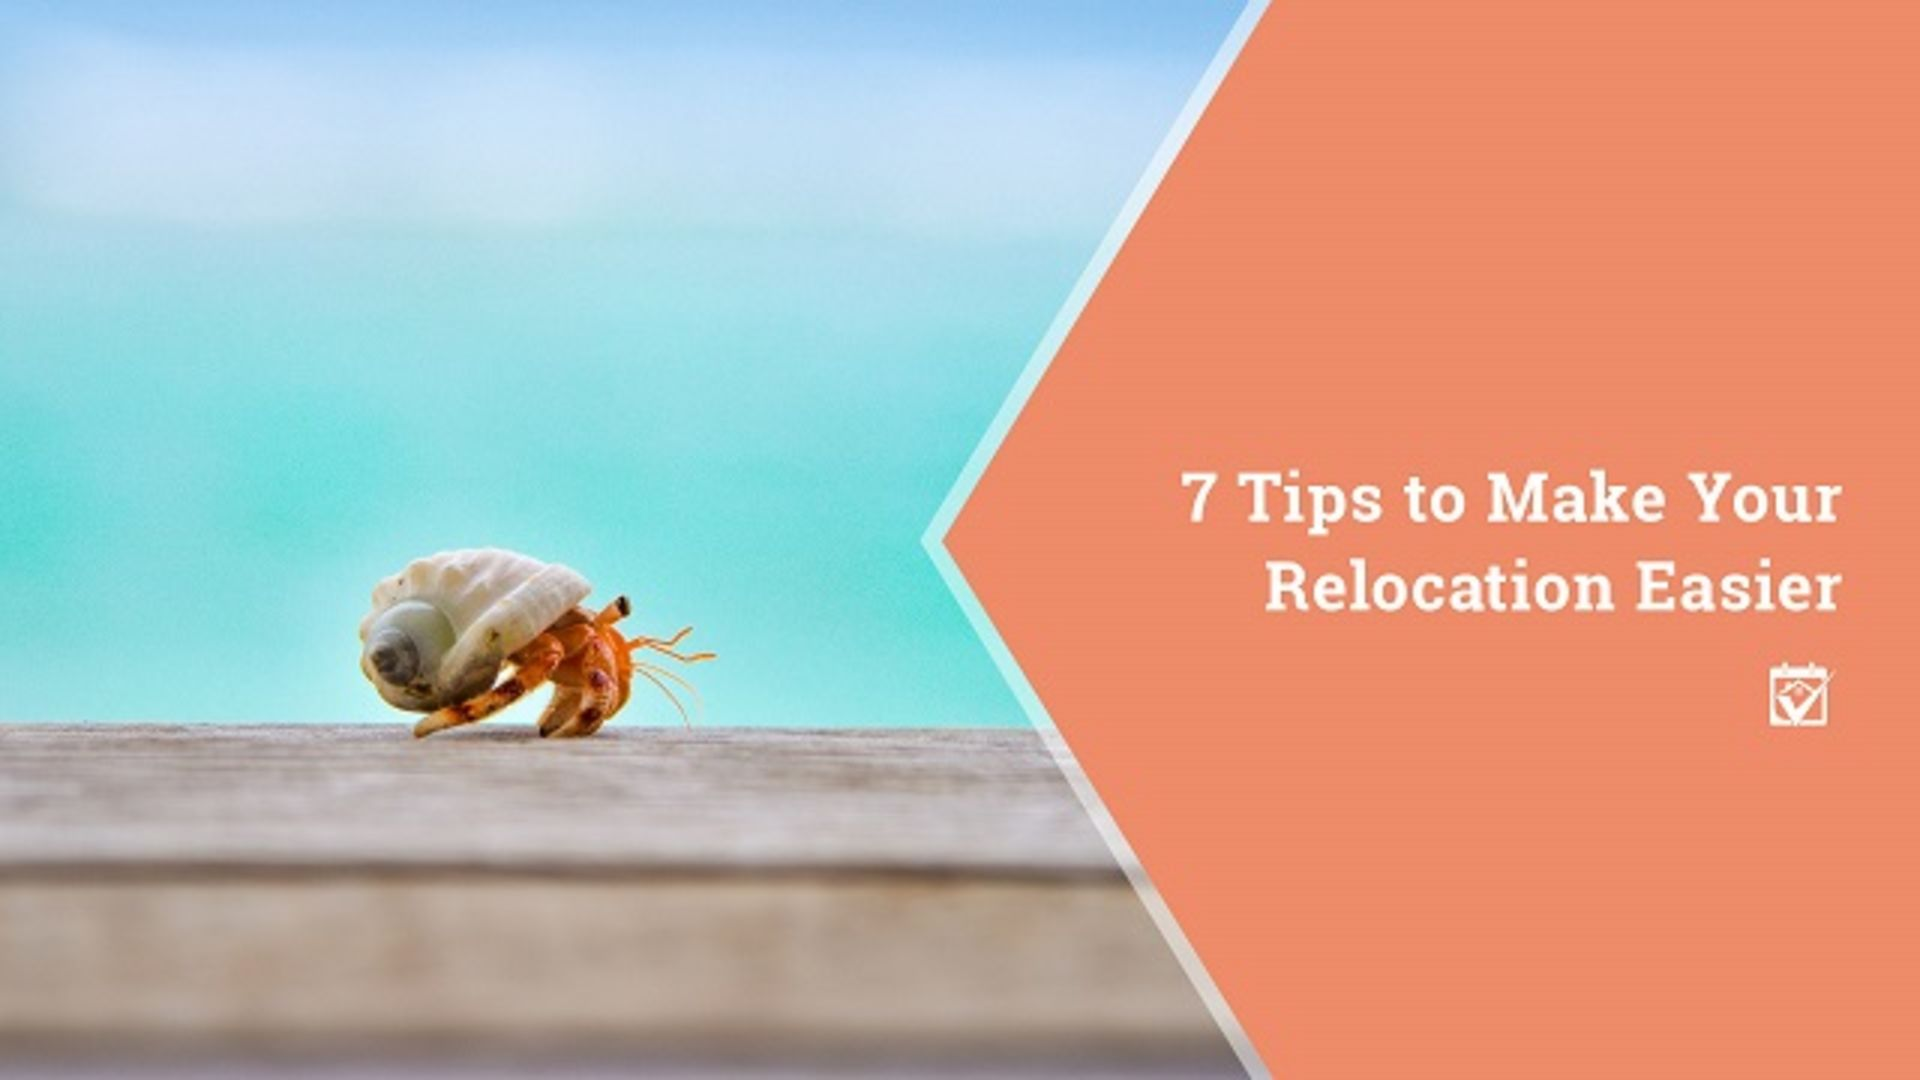 7 Tips to Make Your Relocation Easier